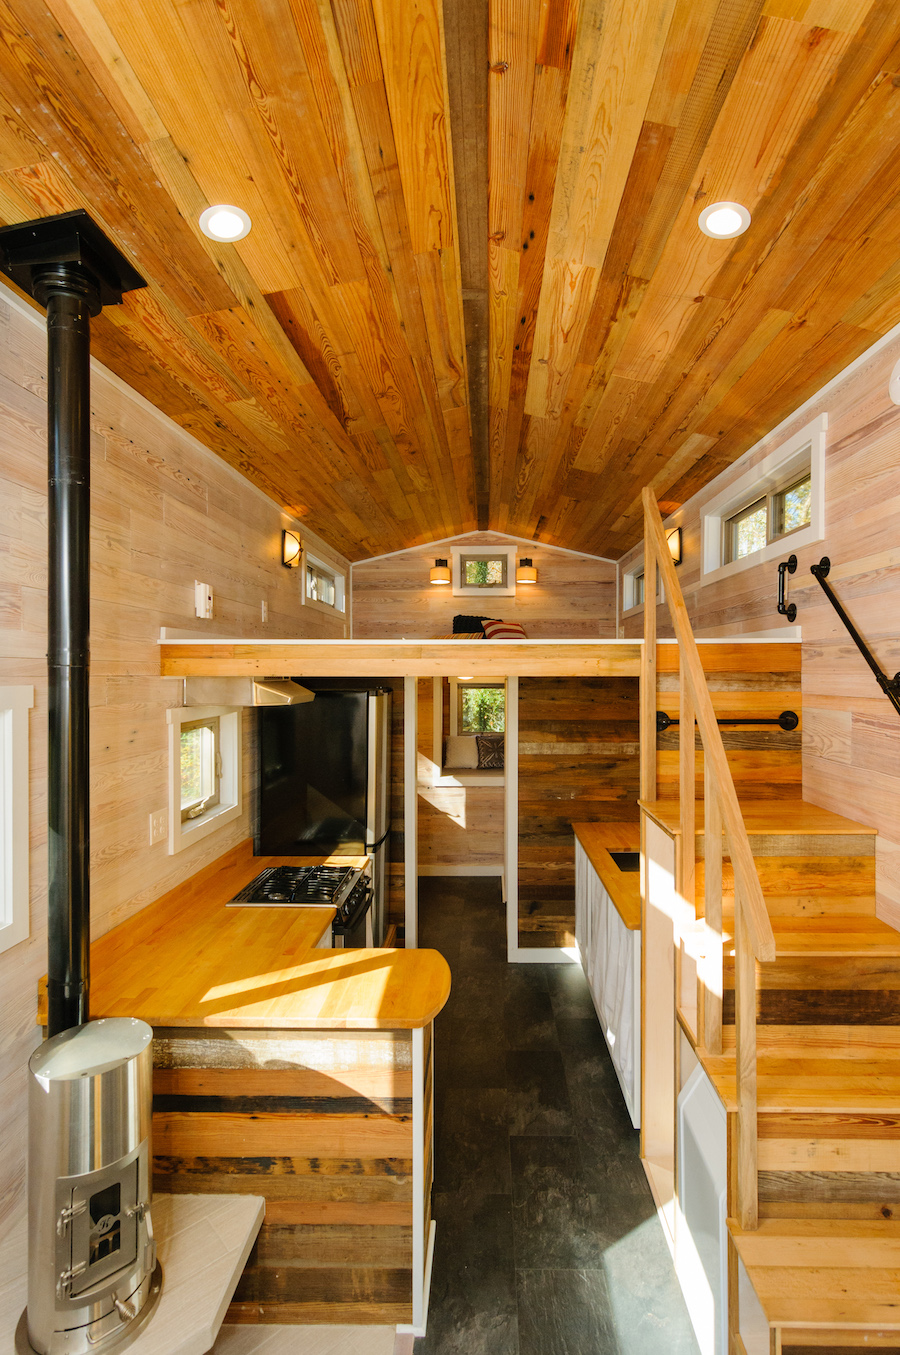 The MH Tiny House Swoon